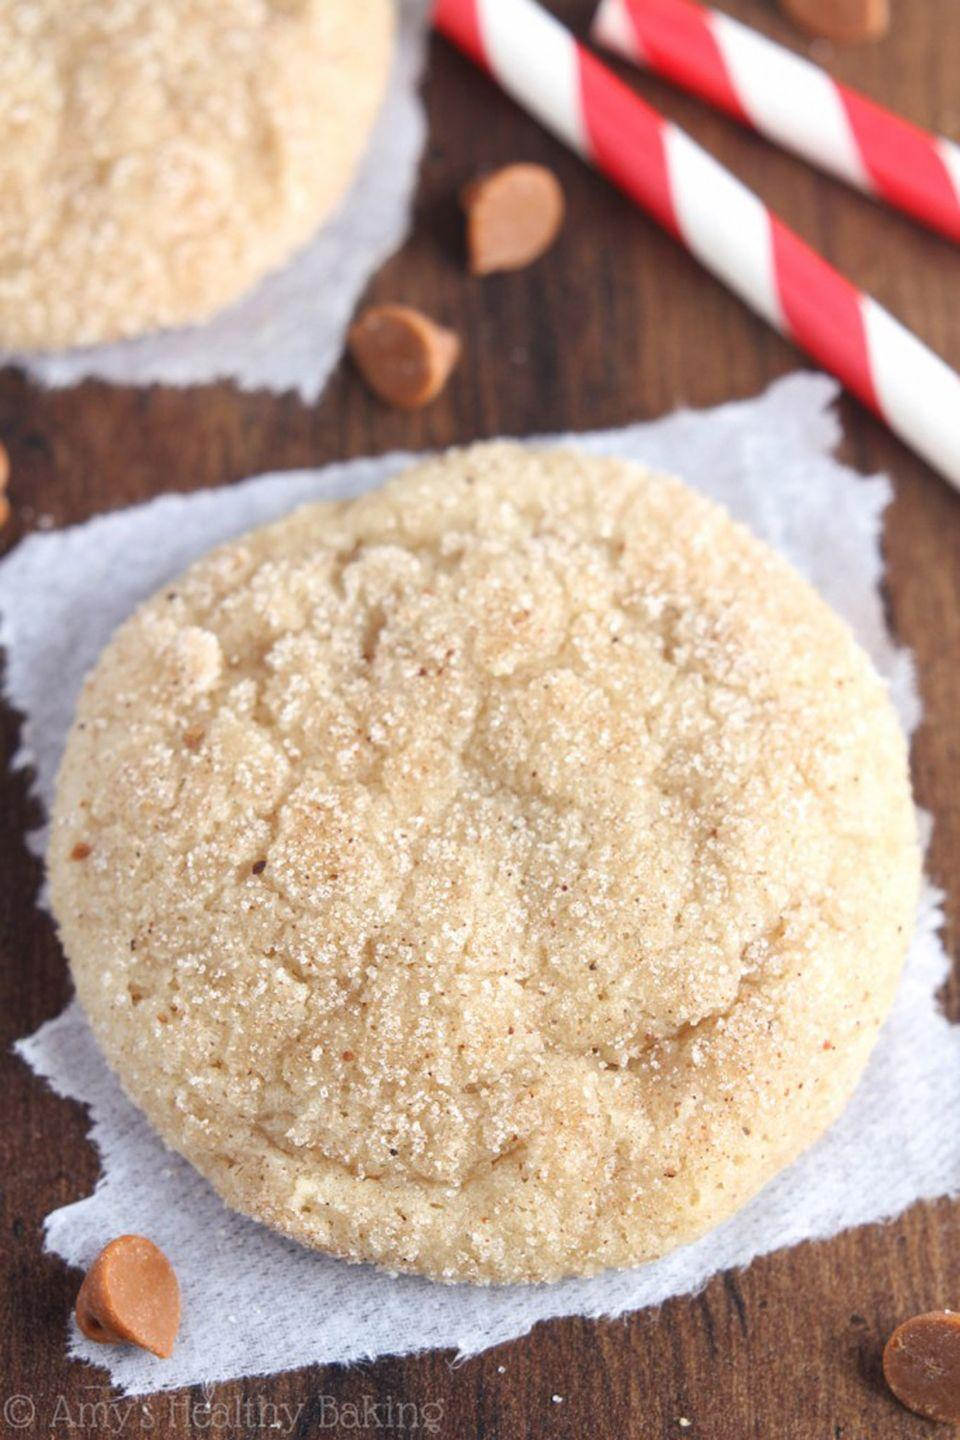 "<p>Even if you're not a fan of the drink, you won't be able to resist these eggnog-spiced snickerdoodles. </p><p><strong>Get the recipe at <a href=""https://amyshealthybaking.com/blog/2014/12/08/eggnog-snickerdoodles/"" rel=""nofollow noopener"" target=""_blank"" data-ylk=""slk:Amy's Healthy Baking"" class=""link rapid-noclick-resp"">Amy's Healthy Baking</a>.</strong></p><p><a class=""link rapid-noclick-resp"" href=""https://www.amazon.com/gp/product/B0000CDVD2?tag=syn-yahoo-20&ascsubtag=%5Bartid%7C10050.g.647%5Bsrc%7Cyahoo-us"" rel=""nofollow noopener"" target=""_blank"" data-ylk=""slk:SHOP COOKIE SCOOPS"">SHOP COOKIE SCOOPS</a></p>"